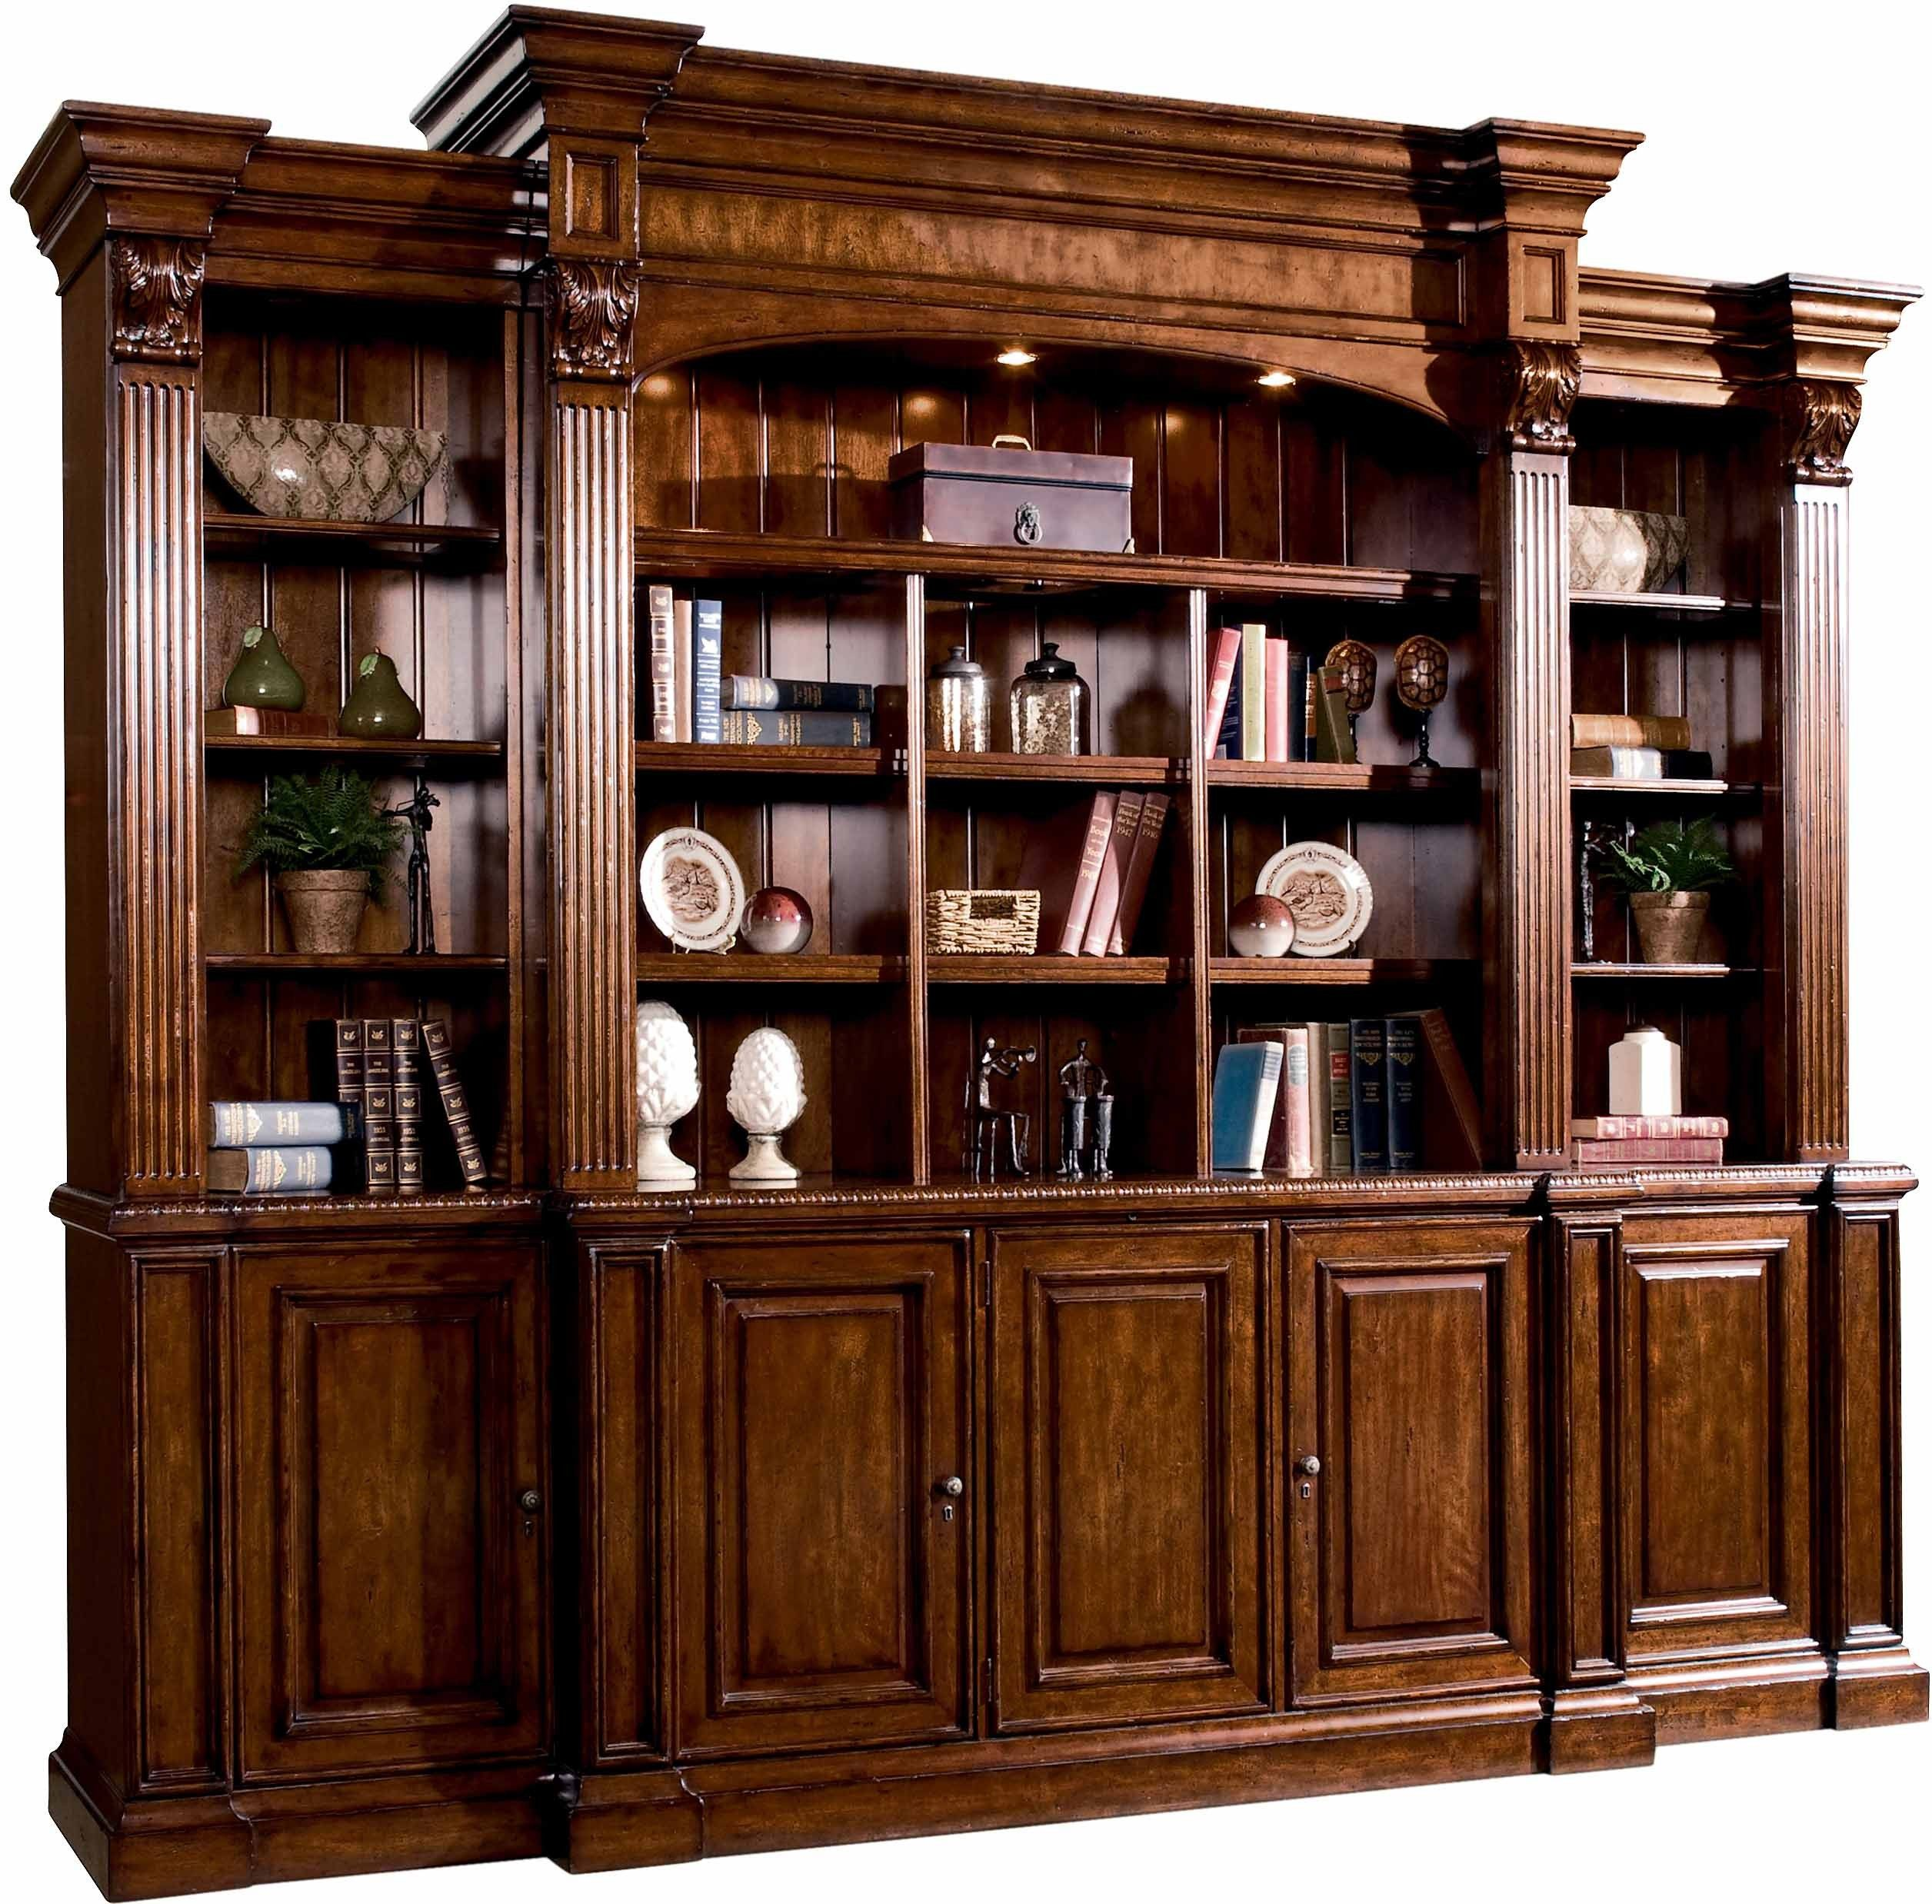 mahogany furniture has is storage solid in style pull this finish a out sideboard pin with featured wood cabinet ample traditional cupboard sligh glossy drawer space